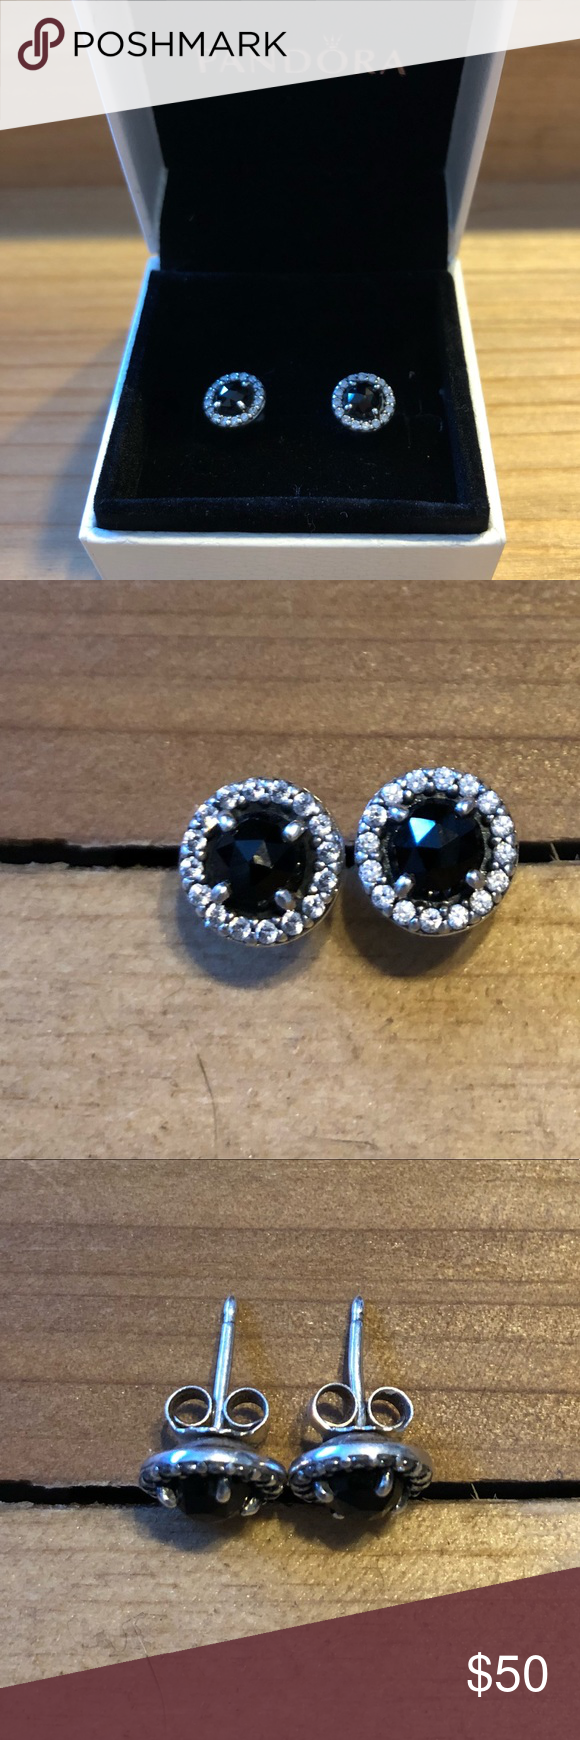 fda9e8372 ... czech pandora glamorous legacy studs black spinel cz silver stud earring  with black spinel and 42727 ...